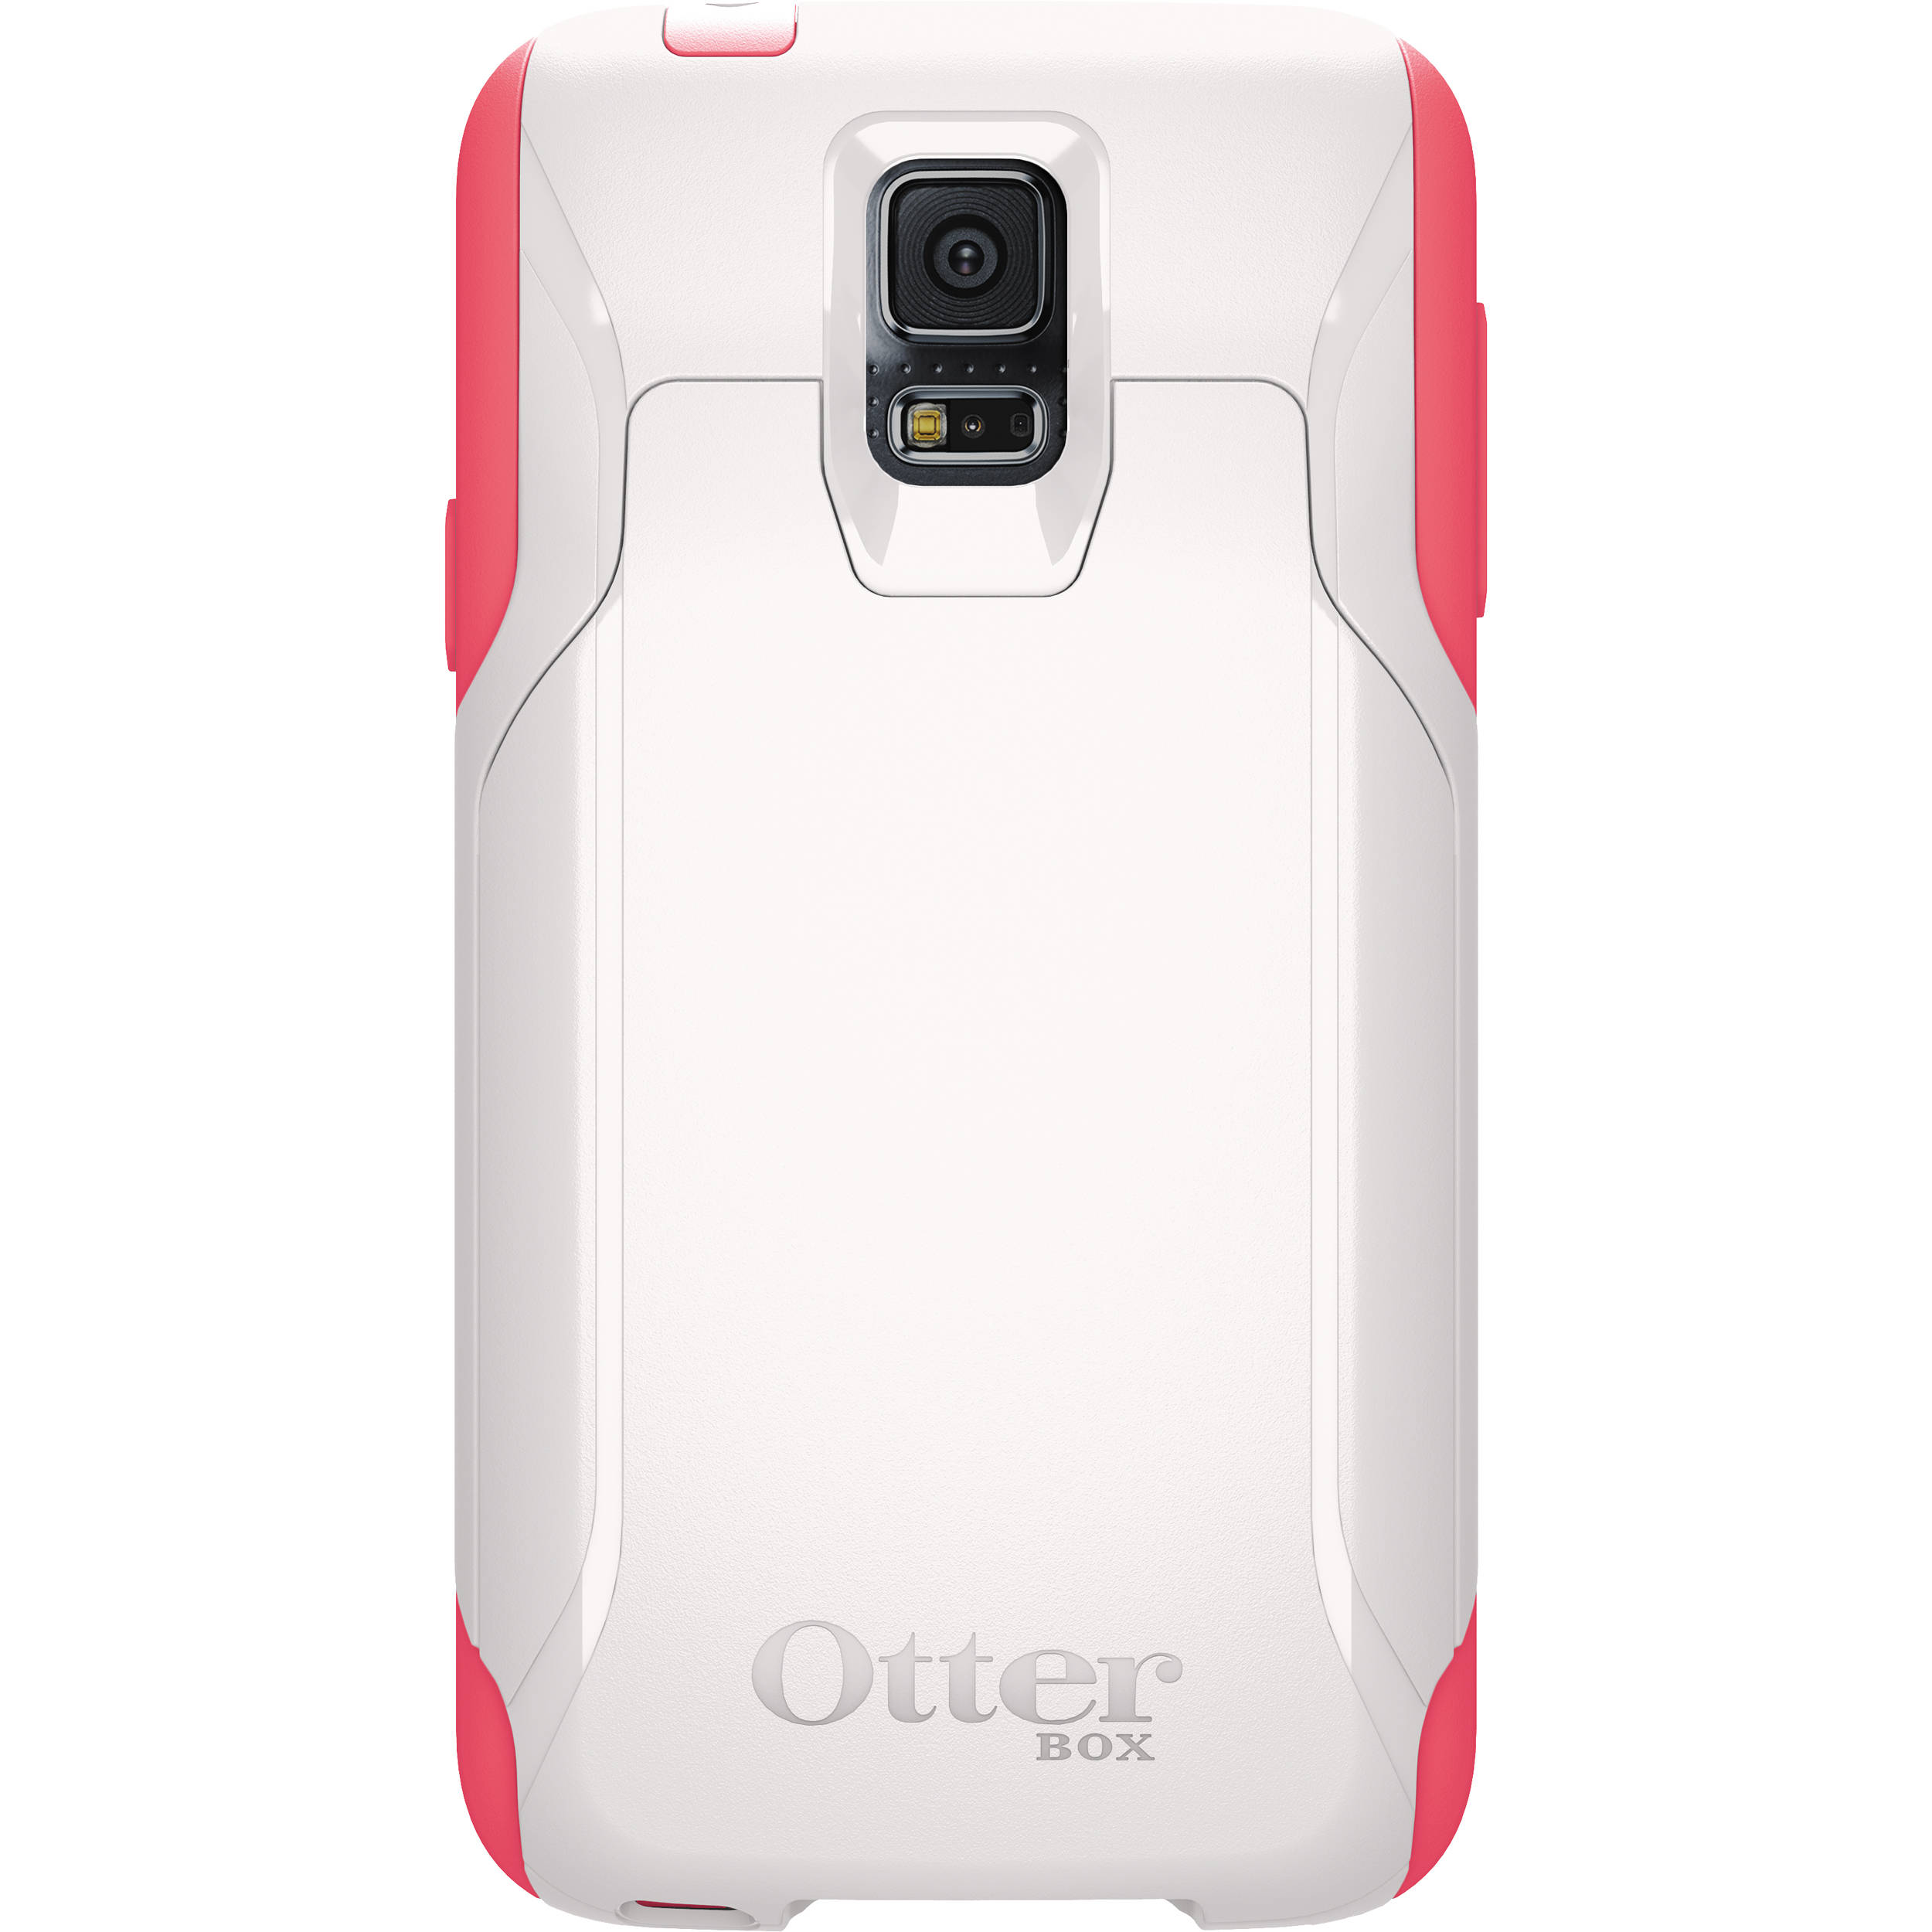 cheap for discount b3fcd 19fe4 OtterBox Commuter Wallet Case for Galaxy S5 (White/Pink)